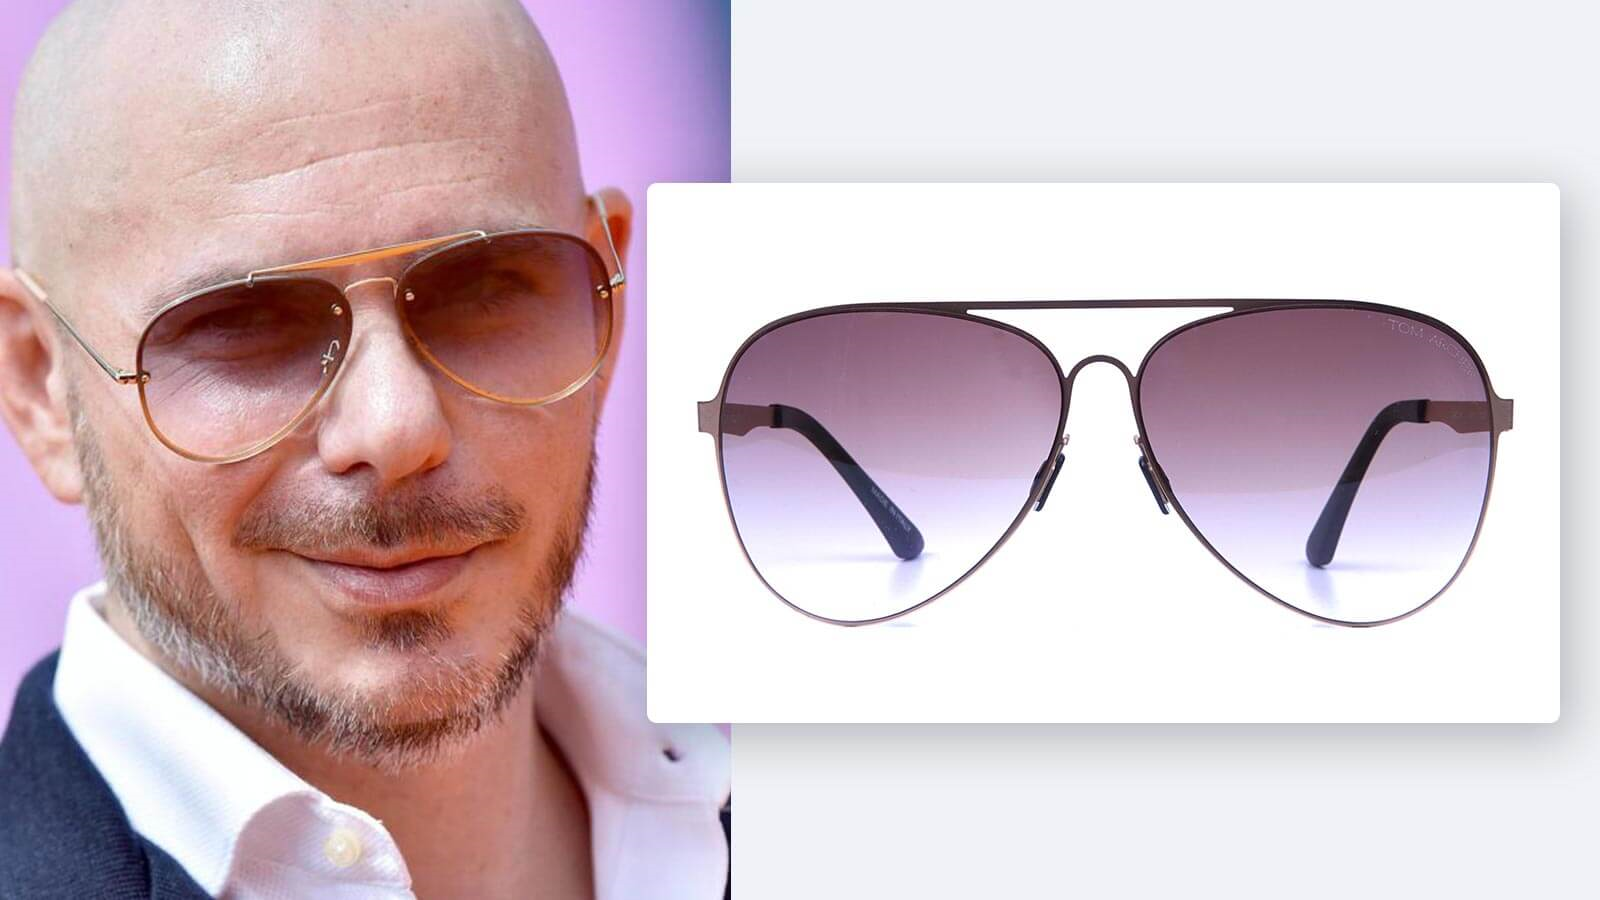 A bald what head suit glasses What kind